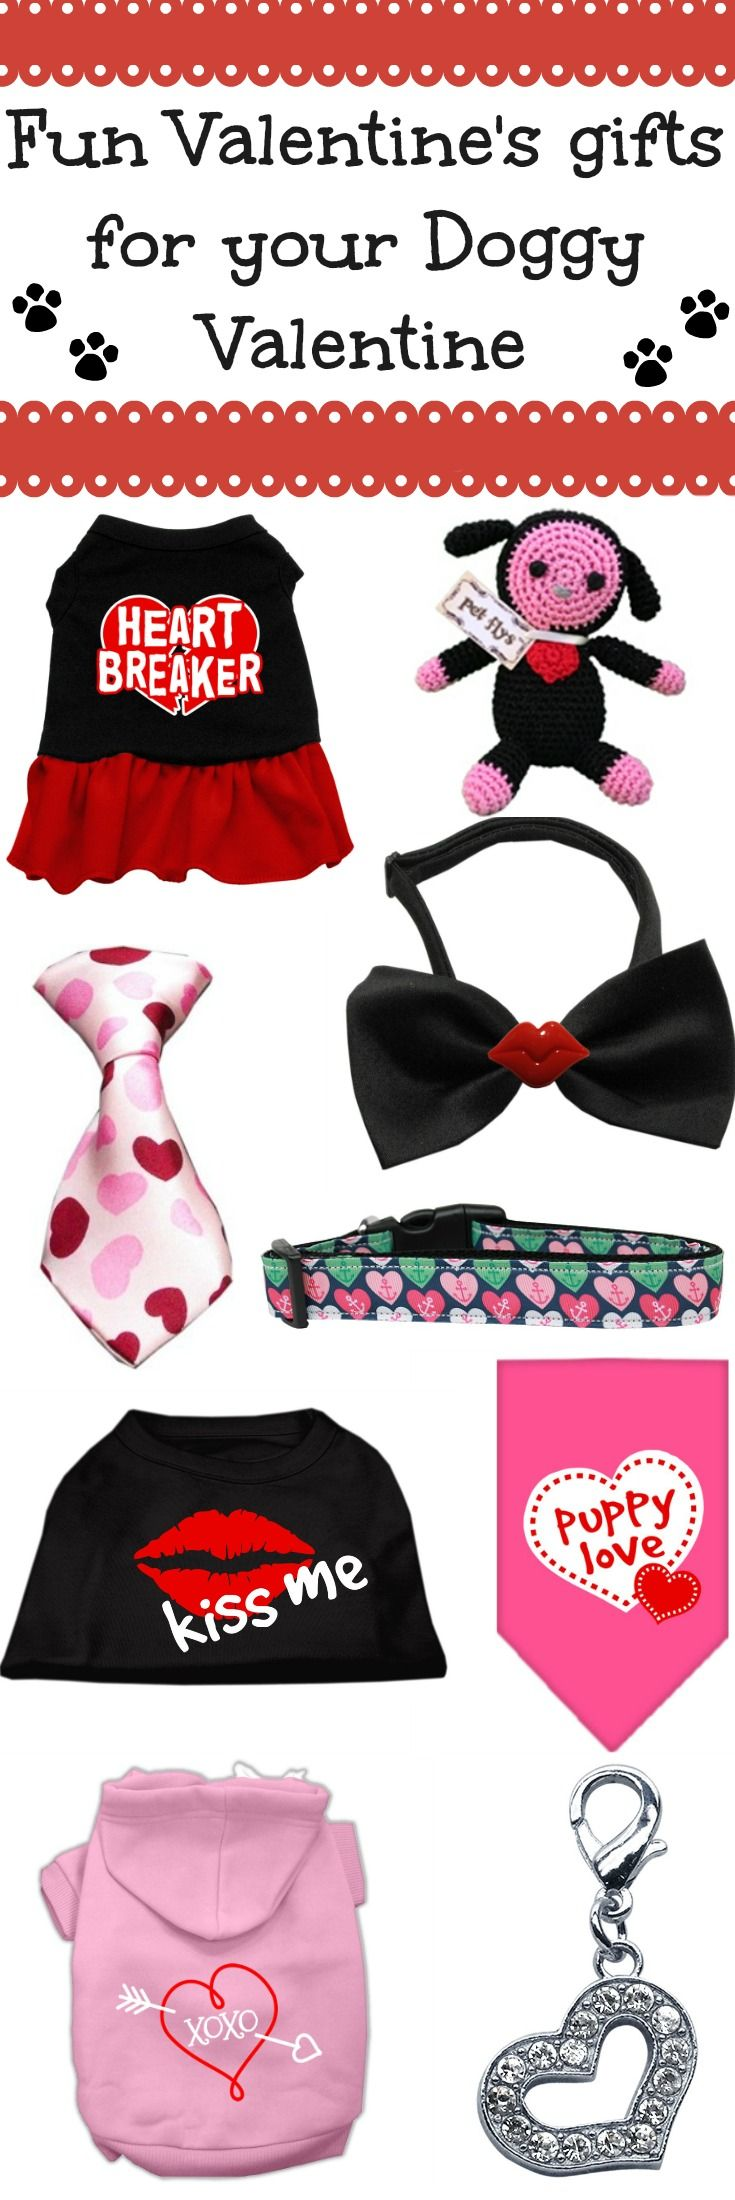 Your pet deserves a treat this Valentine's Day! Find all the best products for your little Valentine this holiday and let the world know just how special your dog or cat is to you! Products include all Valentine's Day themed dog clothes, collars, harnesses, toys and accessories that will really make your pet feel loved.